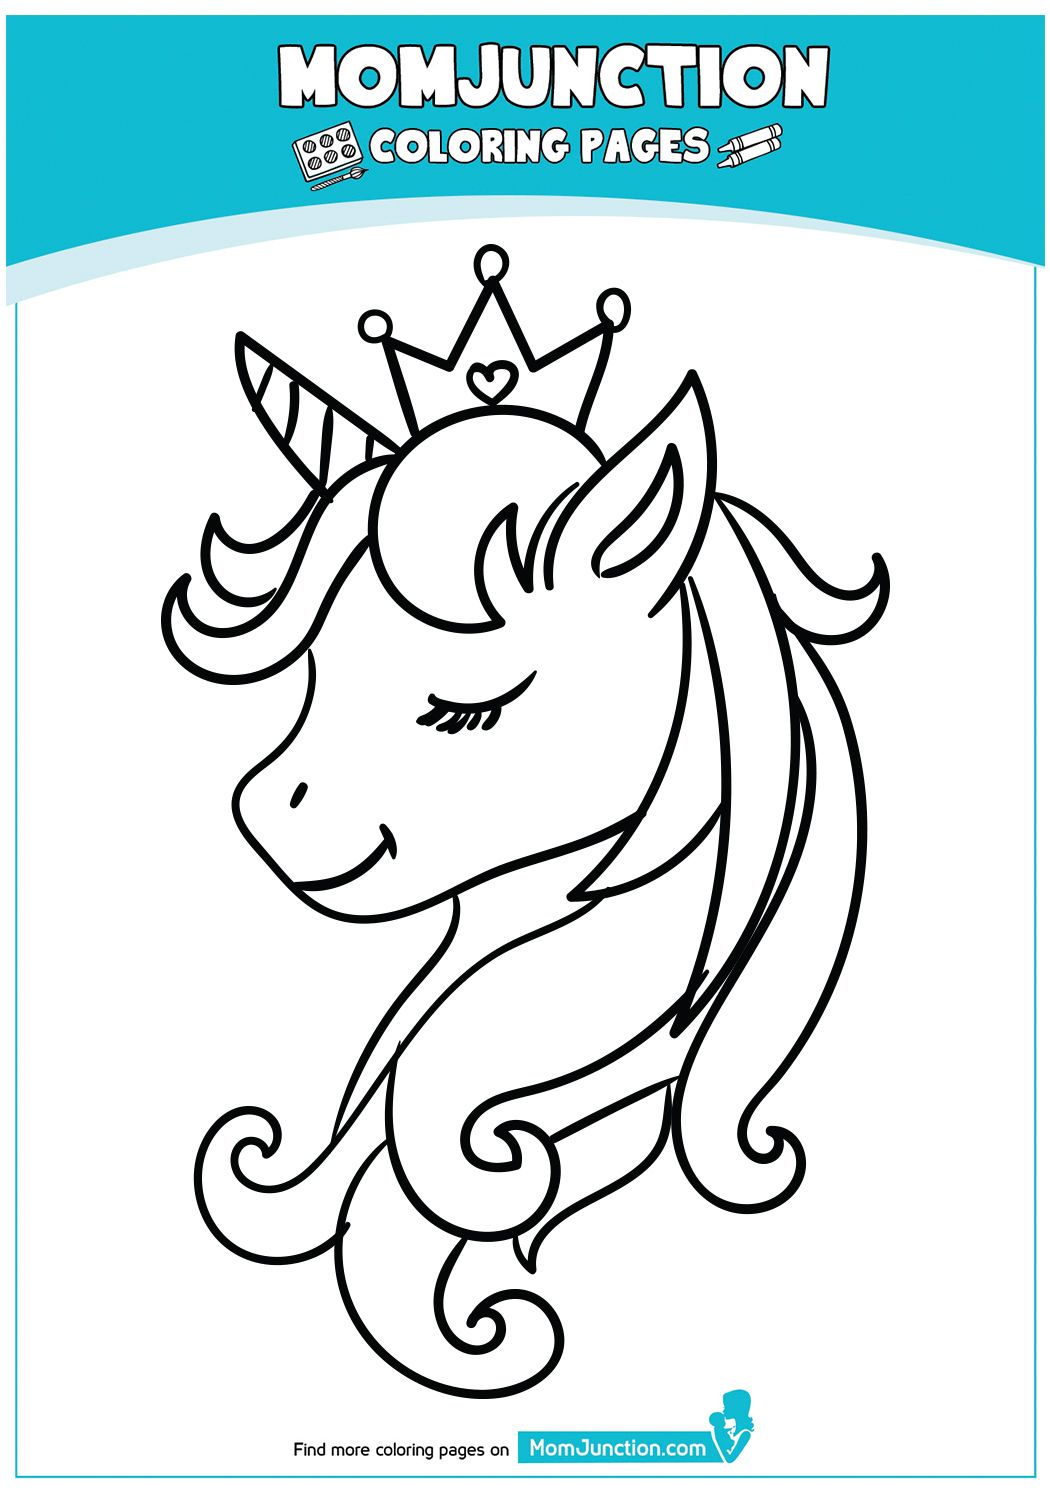 Beautiful Unicorn Head Coloring Page Unicorn Coloring Pages Coloring Pages Disney Coloring Pages